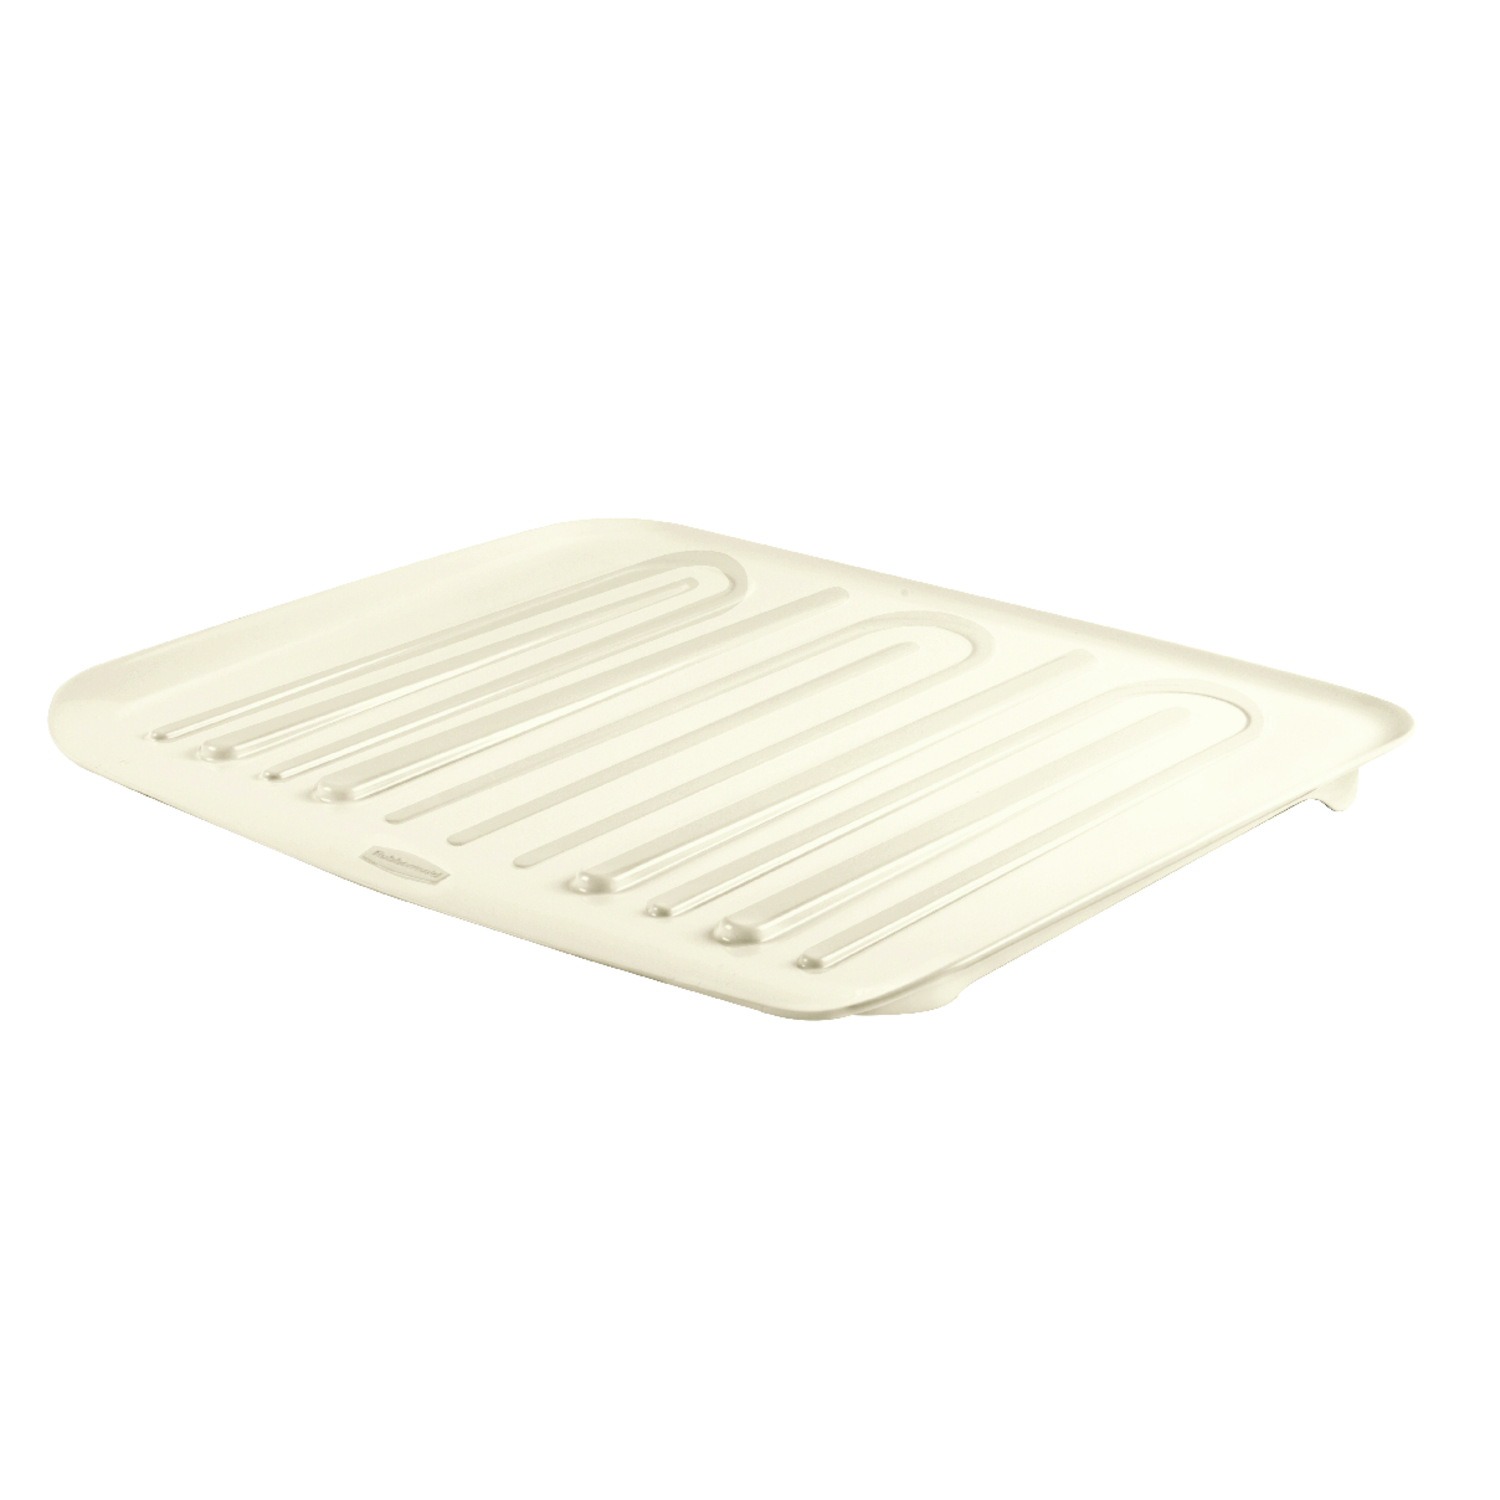 Rubbermaid  18 in. W x 14.7 in. L x 1.3 in. H Plastic  Bisque  Dish Drainer